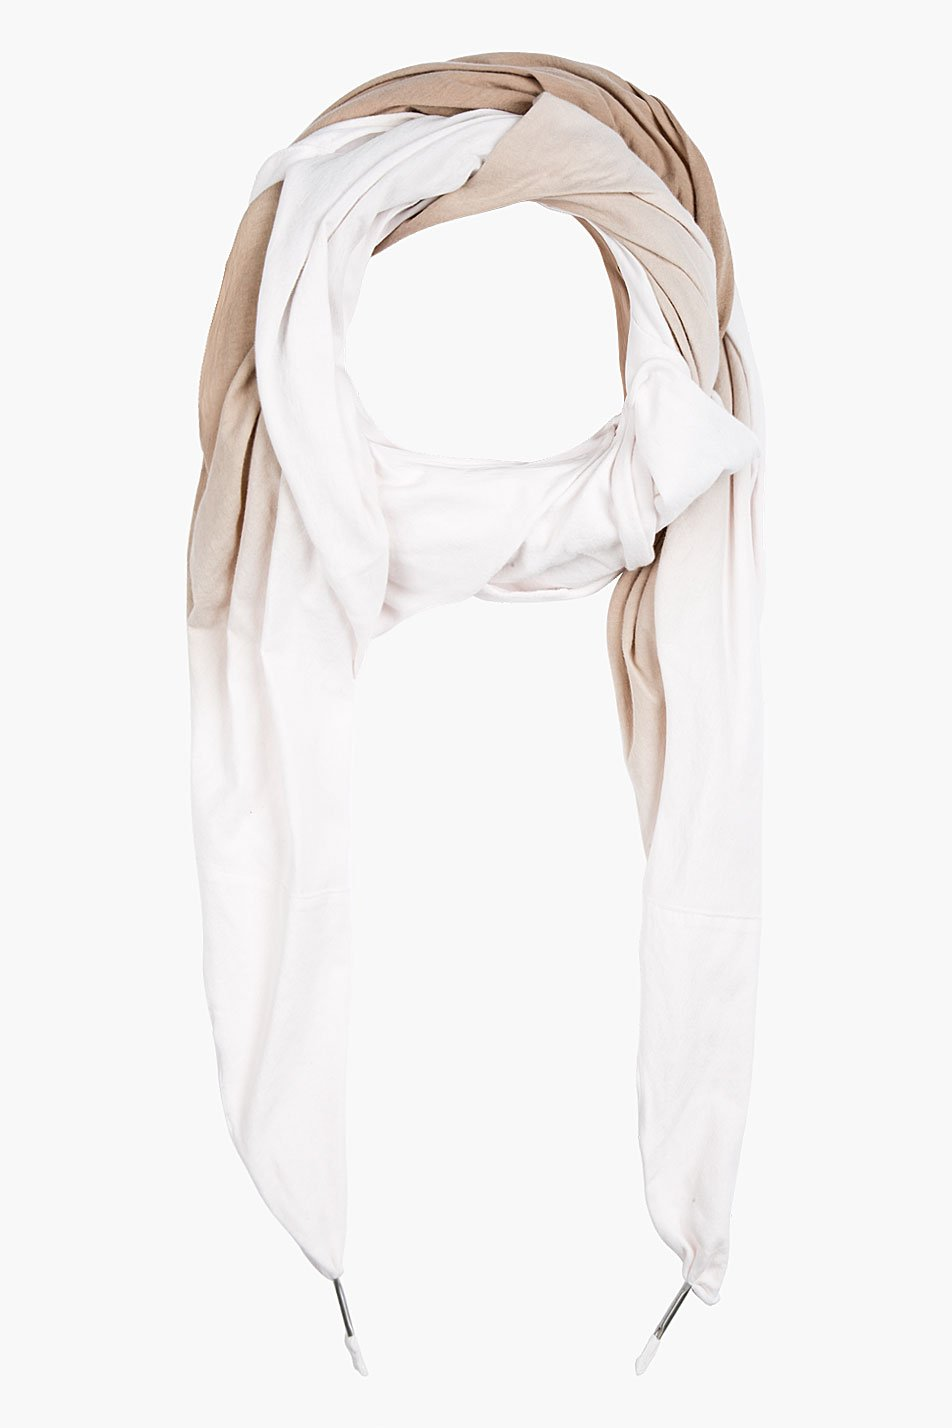 silent by damir doma pink and tan ombre scarf